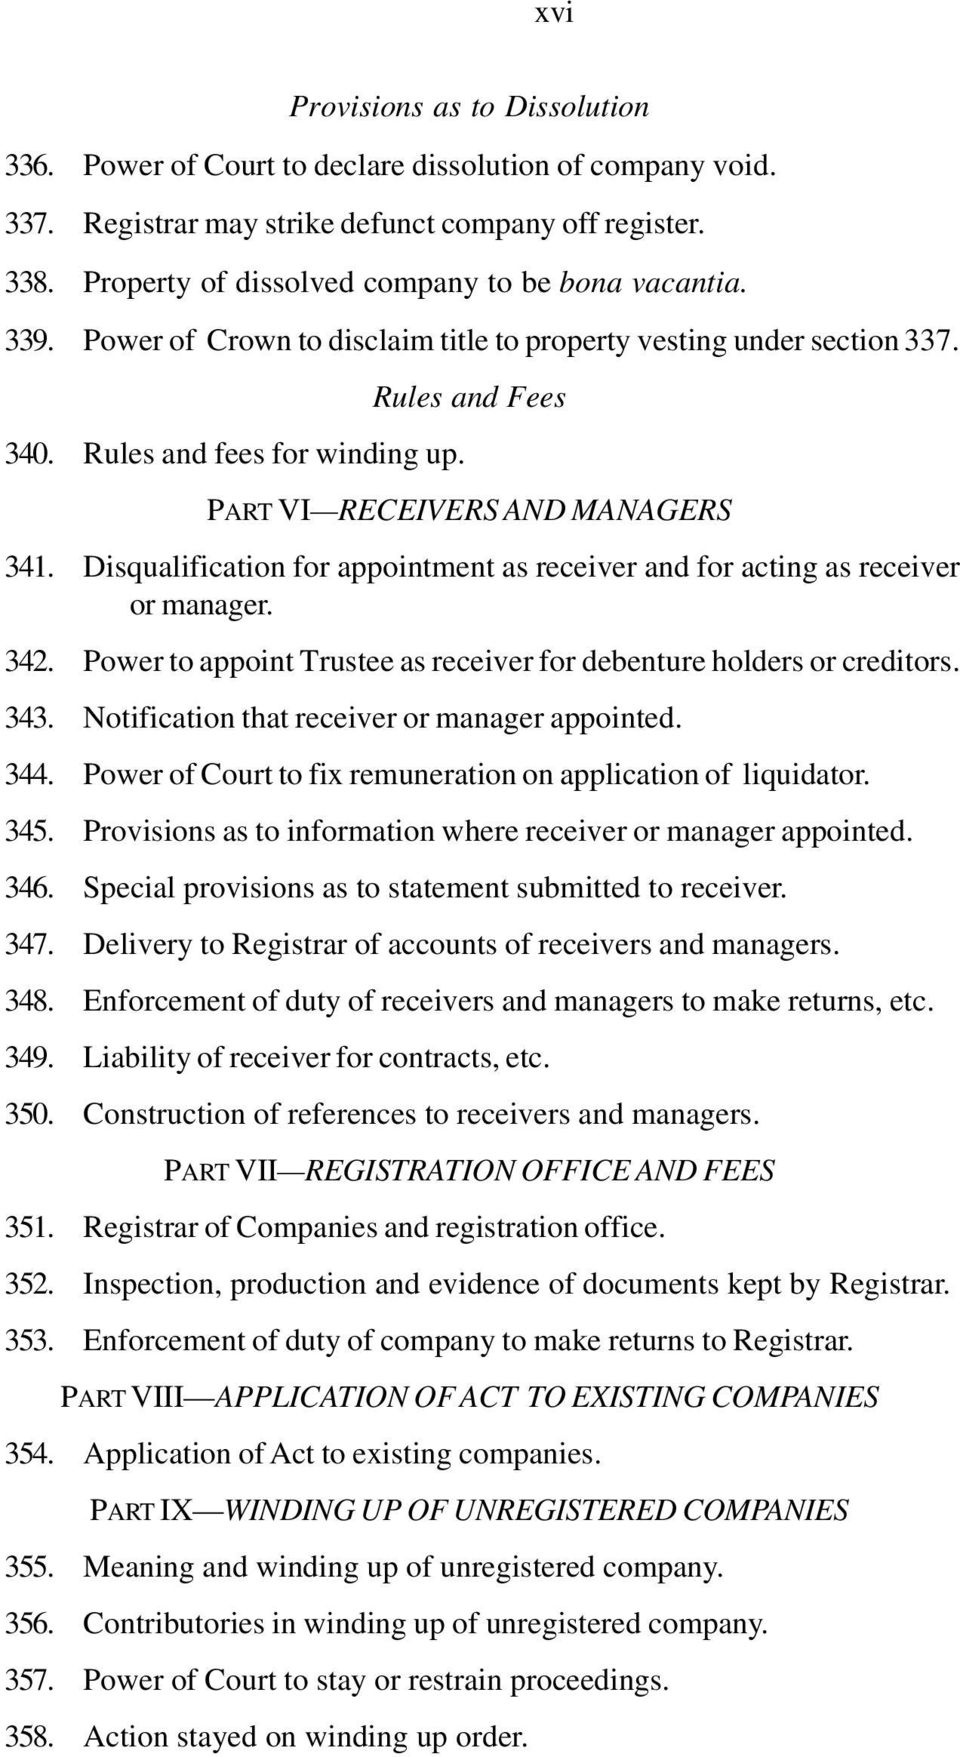 PART VI RECEIVERS AND MANAGERS 341. Disqualification for appointment as receiver and for acting as receiver or manager. 342. Power to appoint Trustee as receiver for debenture holders or creditors.